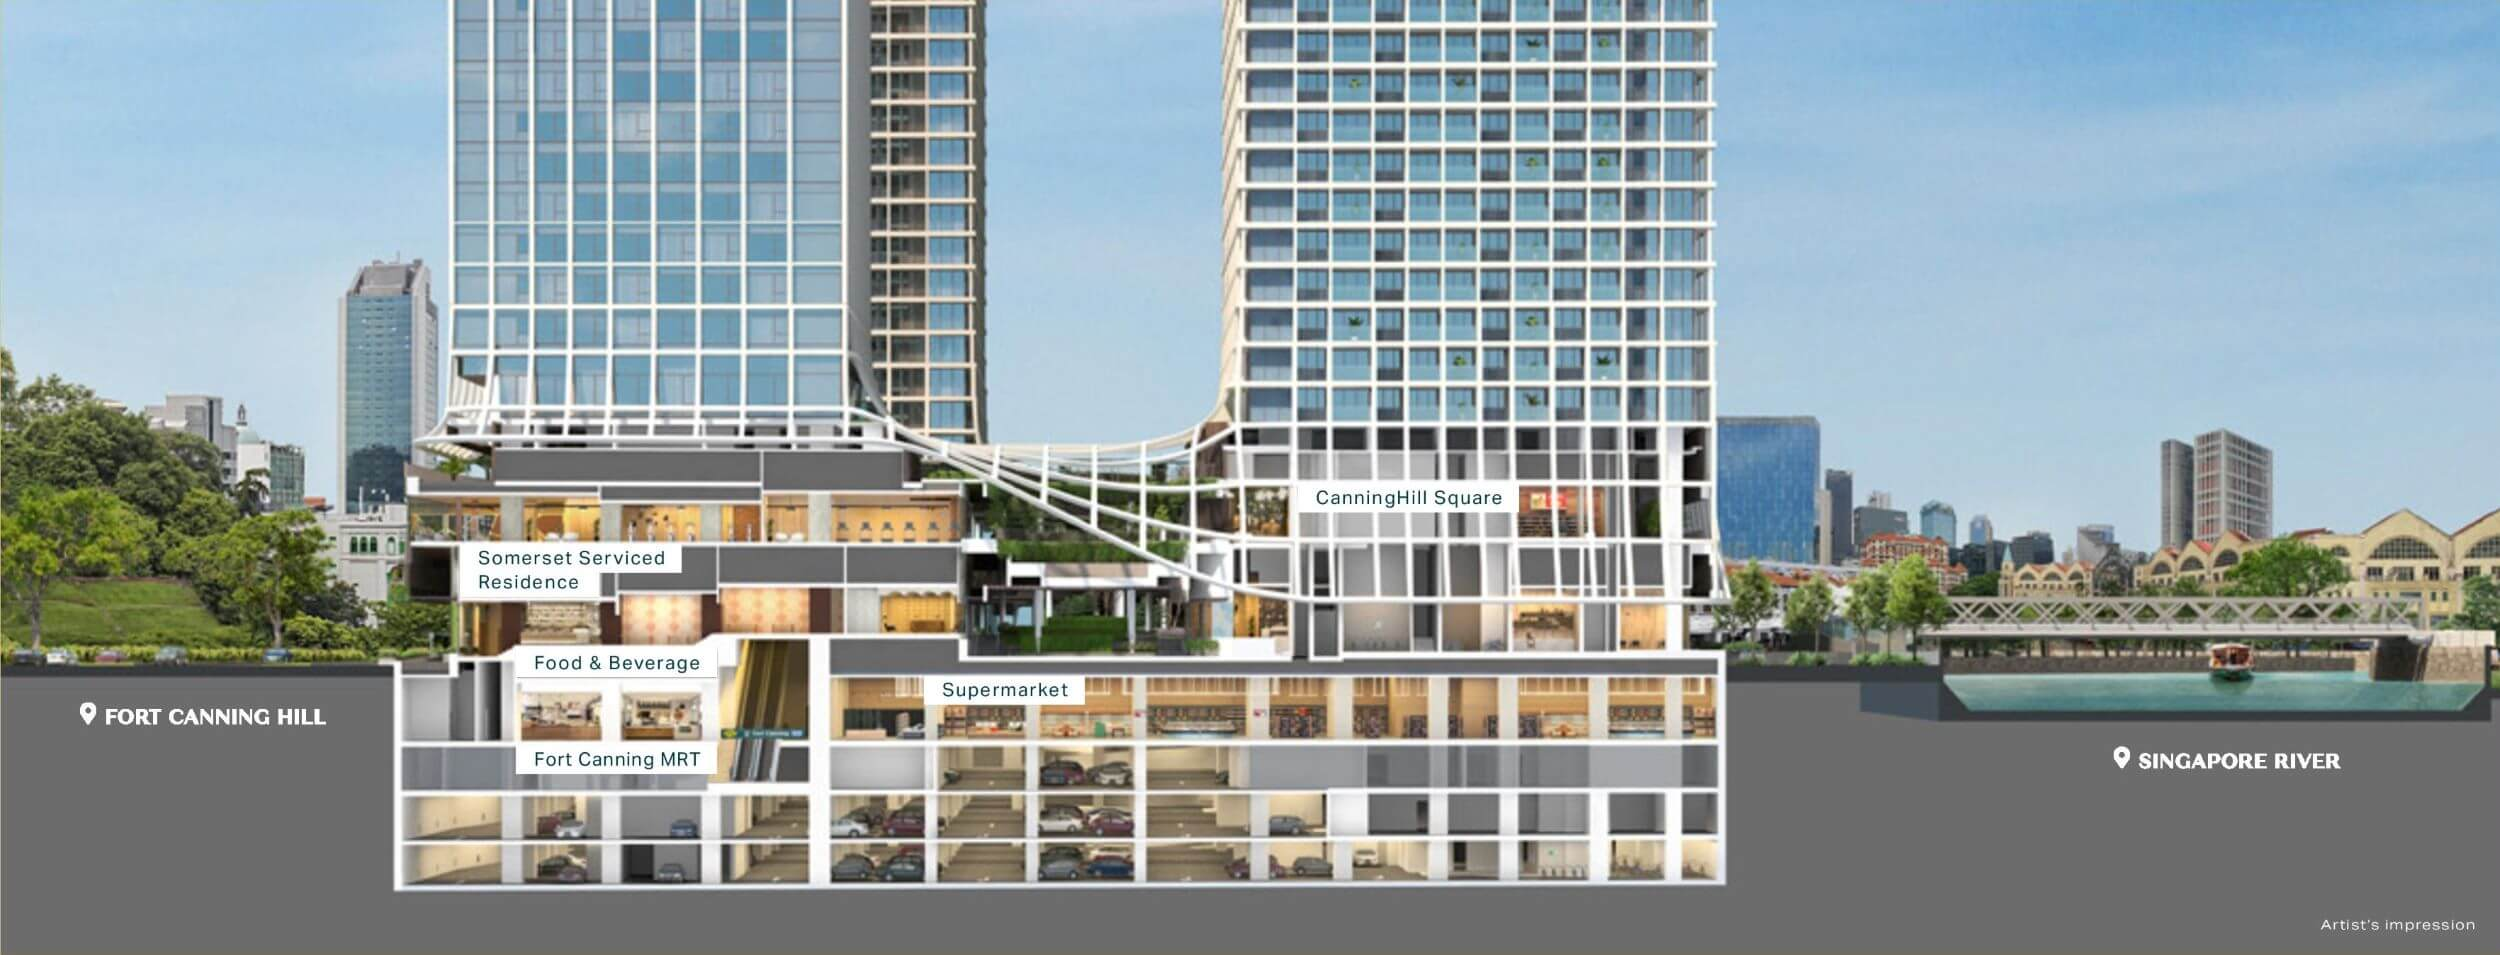 Canninghill Piers Integrated Living 2 1 1